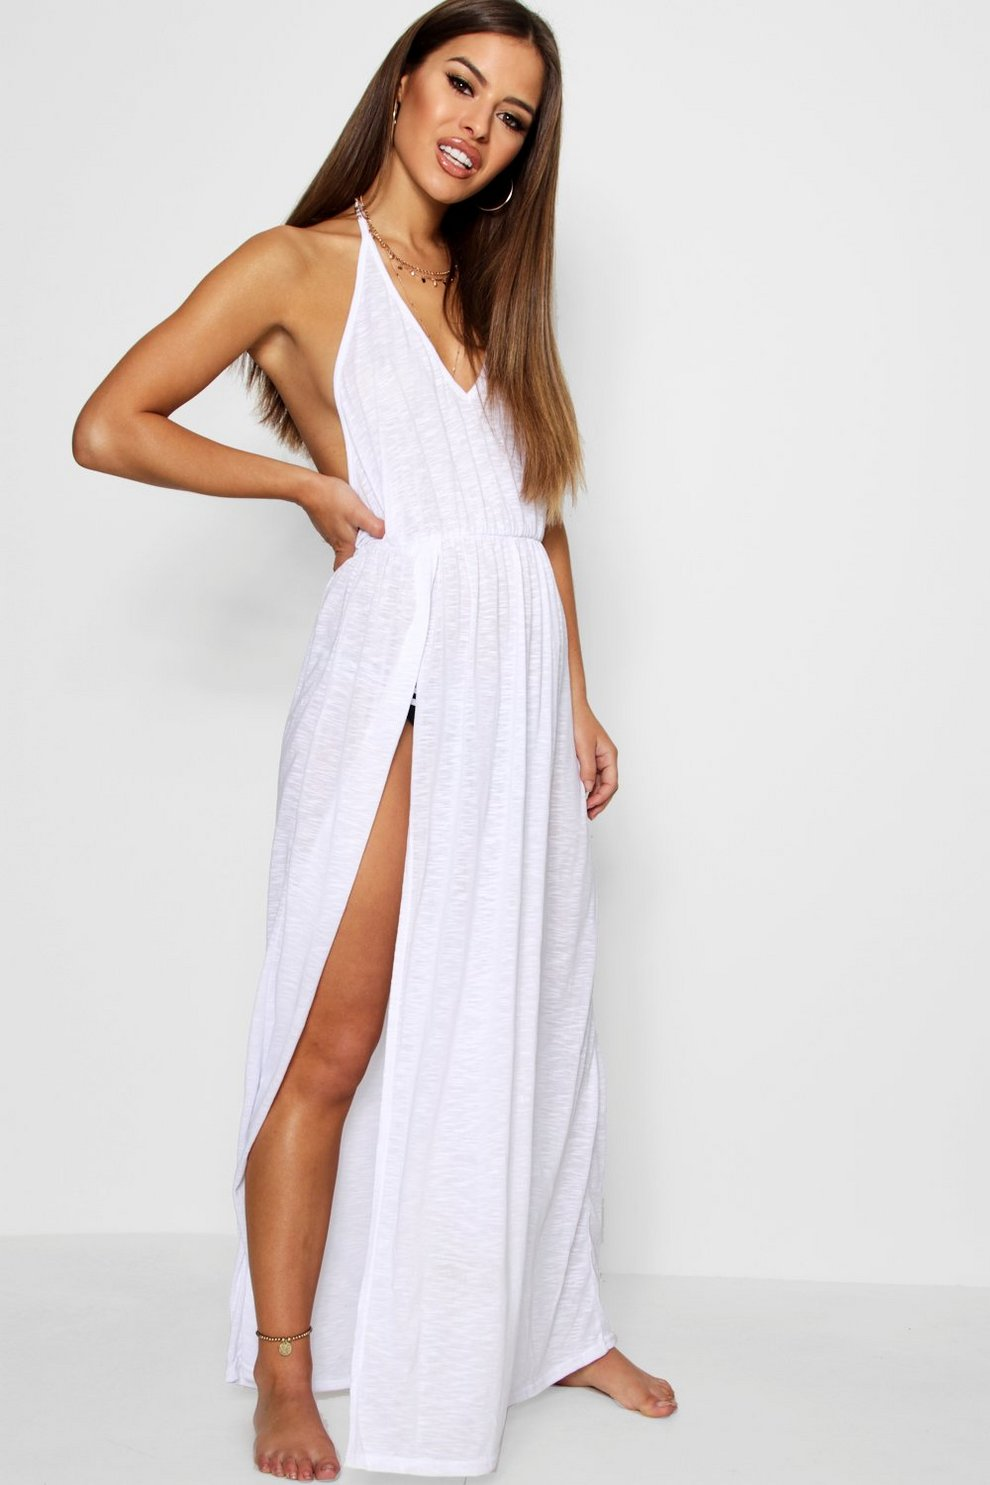 0e68d10cff1ddc Petite Alison Maxi Beach Cover-Up Dress | Boohoo